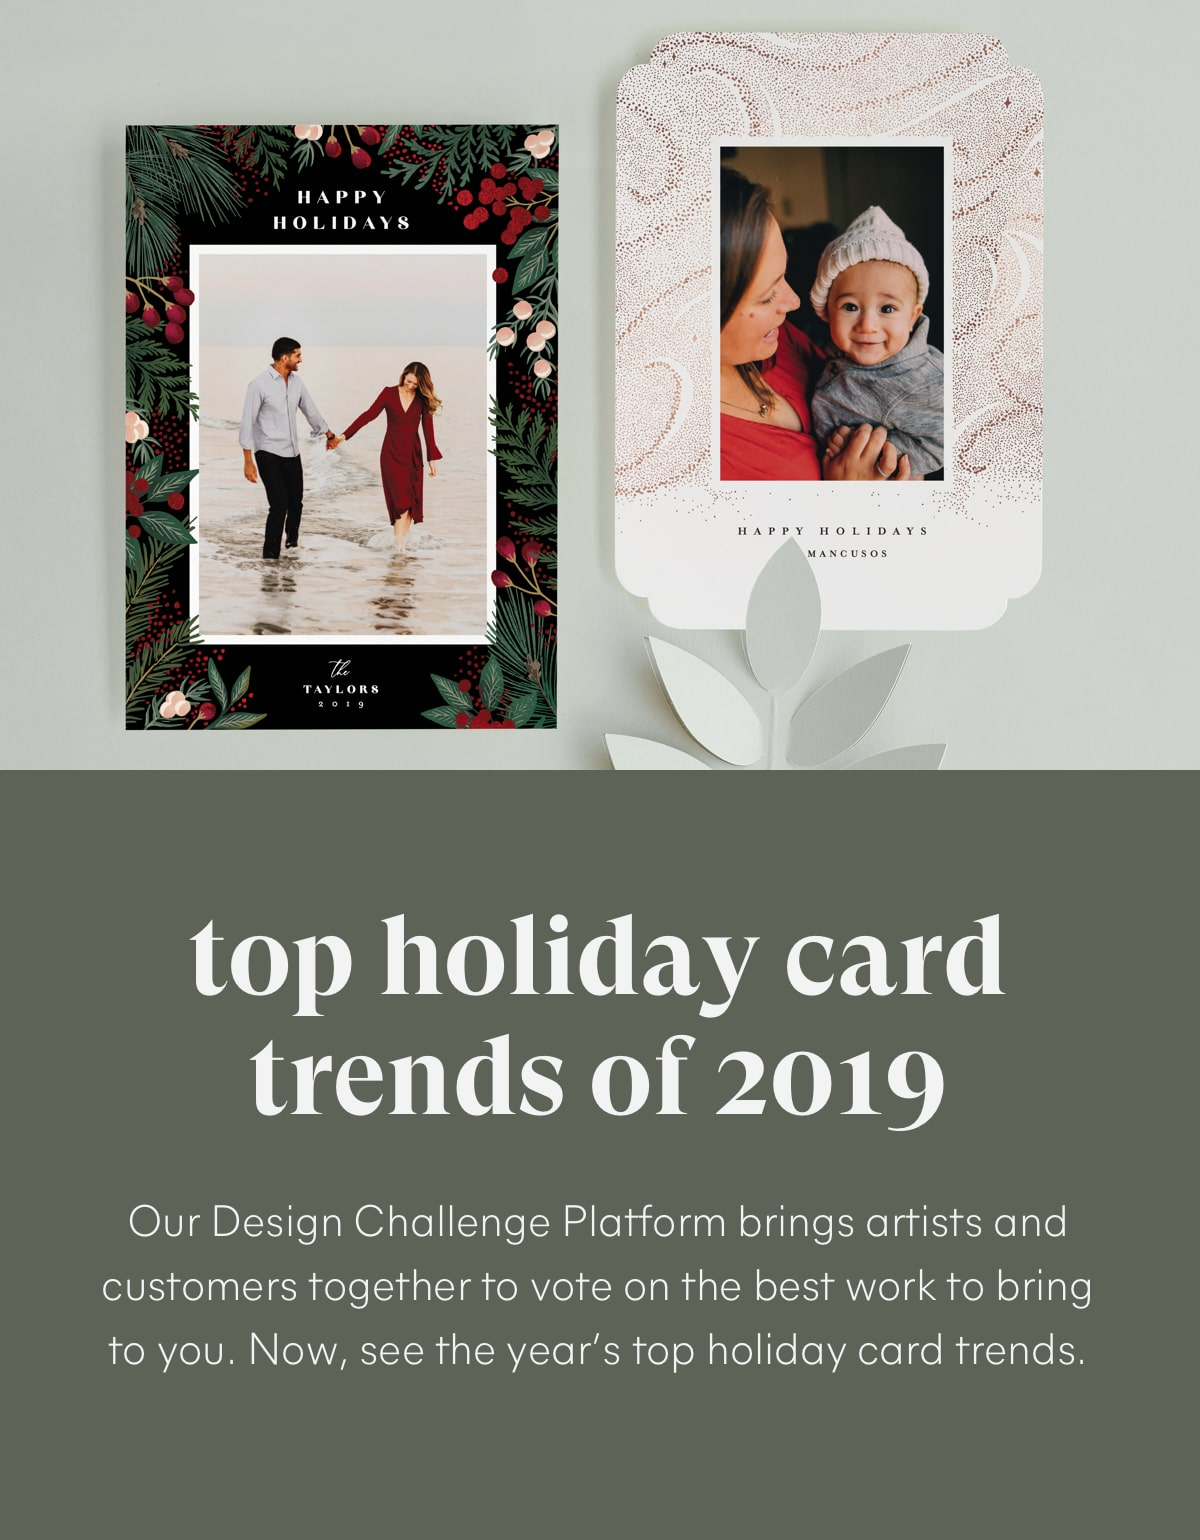 The 2019 Holiday Card Collection - Top Trends